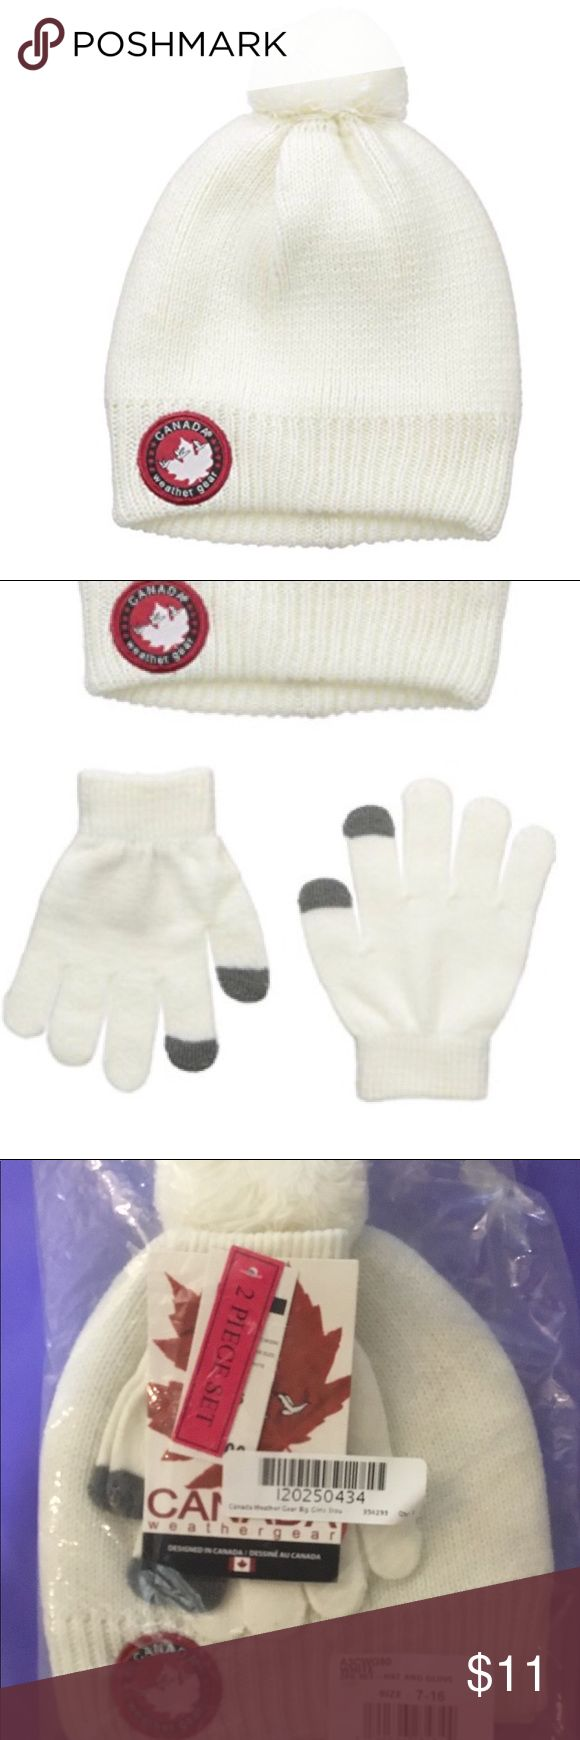 Canada Weathergear Girls' Beanie n matching Gloves Girls' size 7-16 off-white Slouchy Beanie with Tech Touch Gloves Set   One size fits most  Slouchy sweater knit Pom Pom beanie and Tech Touch gloves  set made of sweater knit with lurex threads  Tech touch matching gloves means no need to remove gloves for phone access  Matching gloves feature Tech Touch finger and thumb   Color: white, off-white  Size: Girls' 7-16, one size fits most Canada Weathergear Accessories Hats